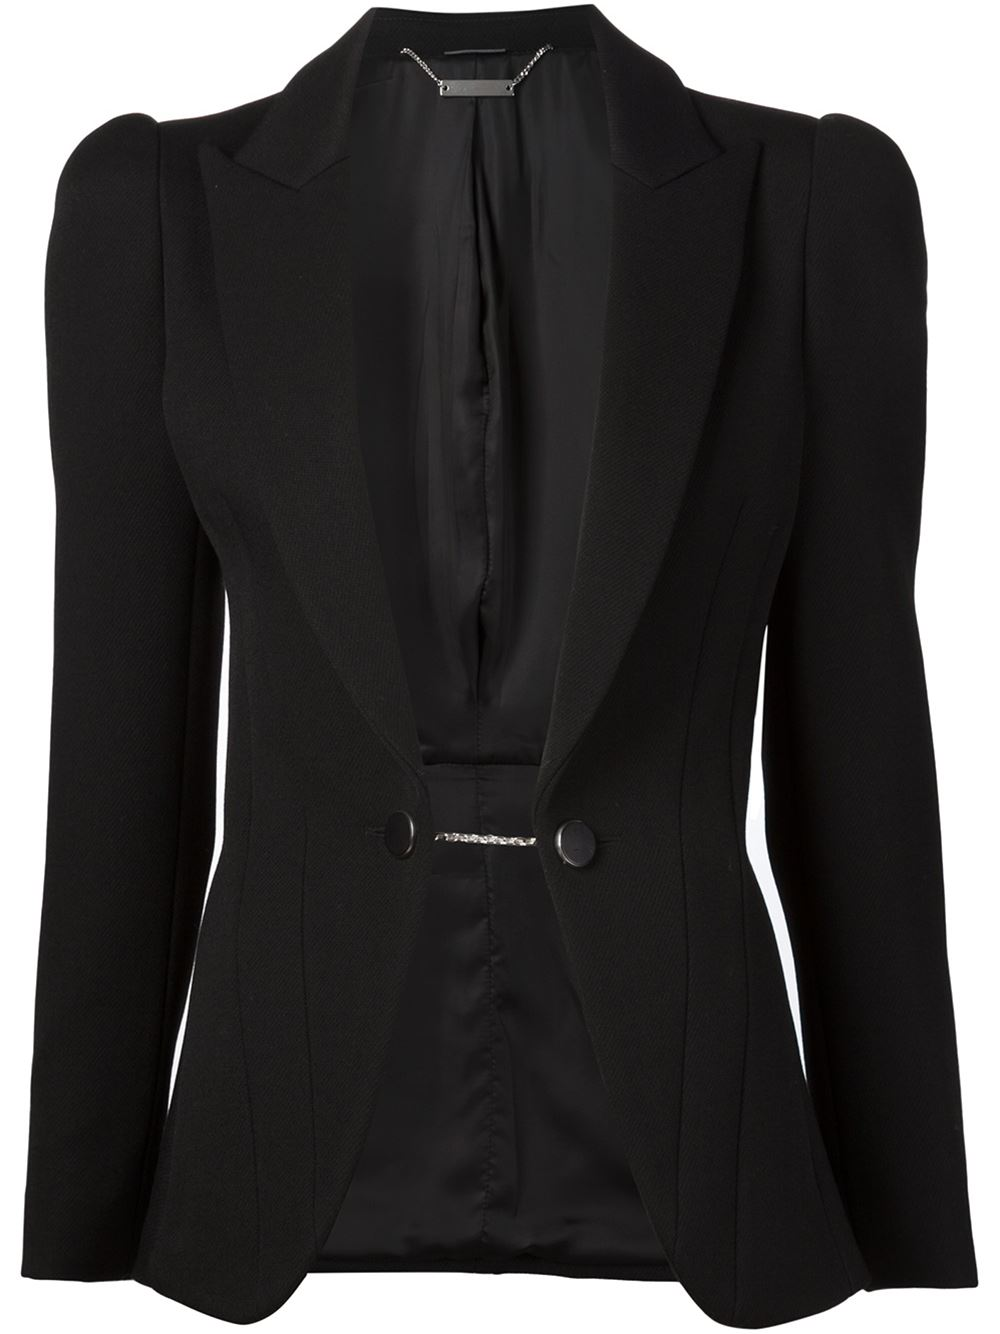 Alexander McQueen tailored blazer, FarFetch.com